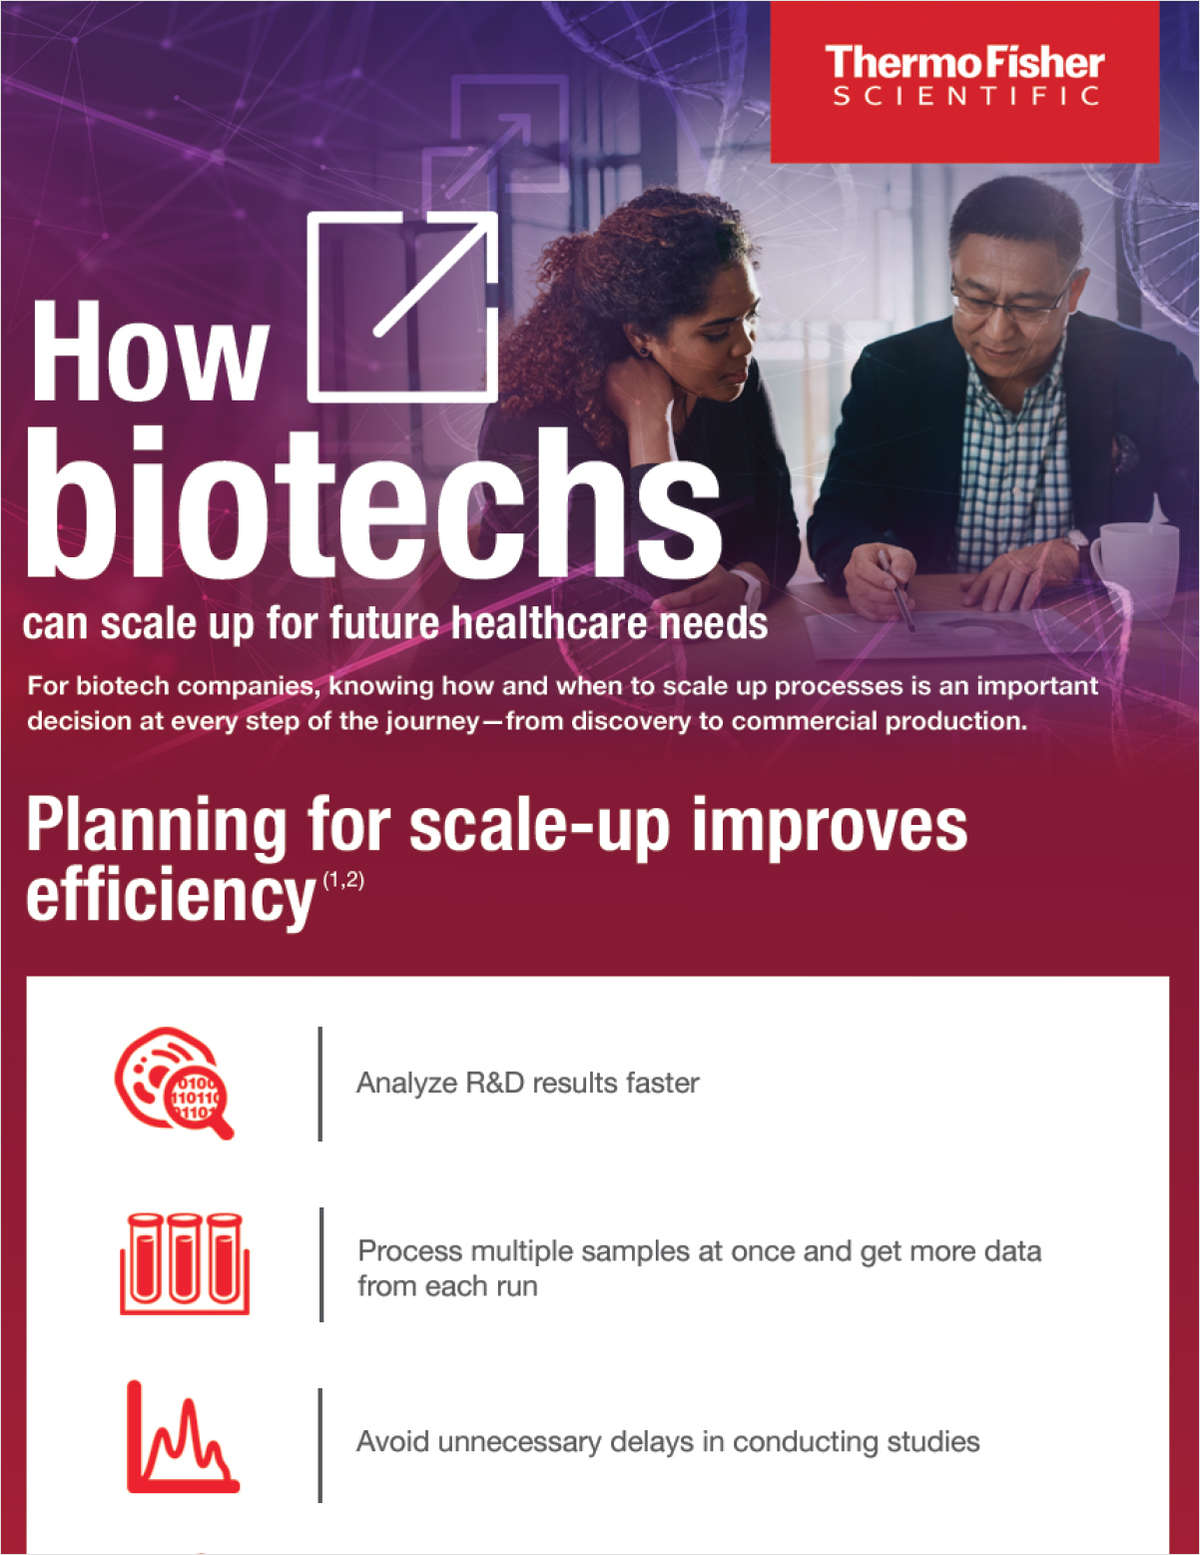 How biotechs can scale up for future healthcare needs